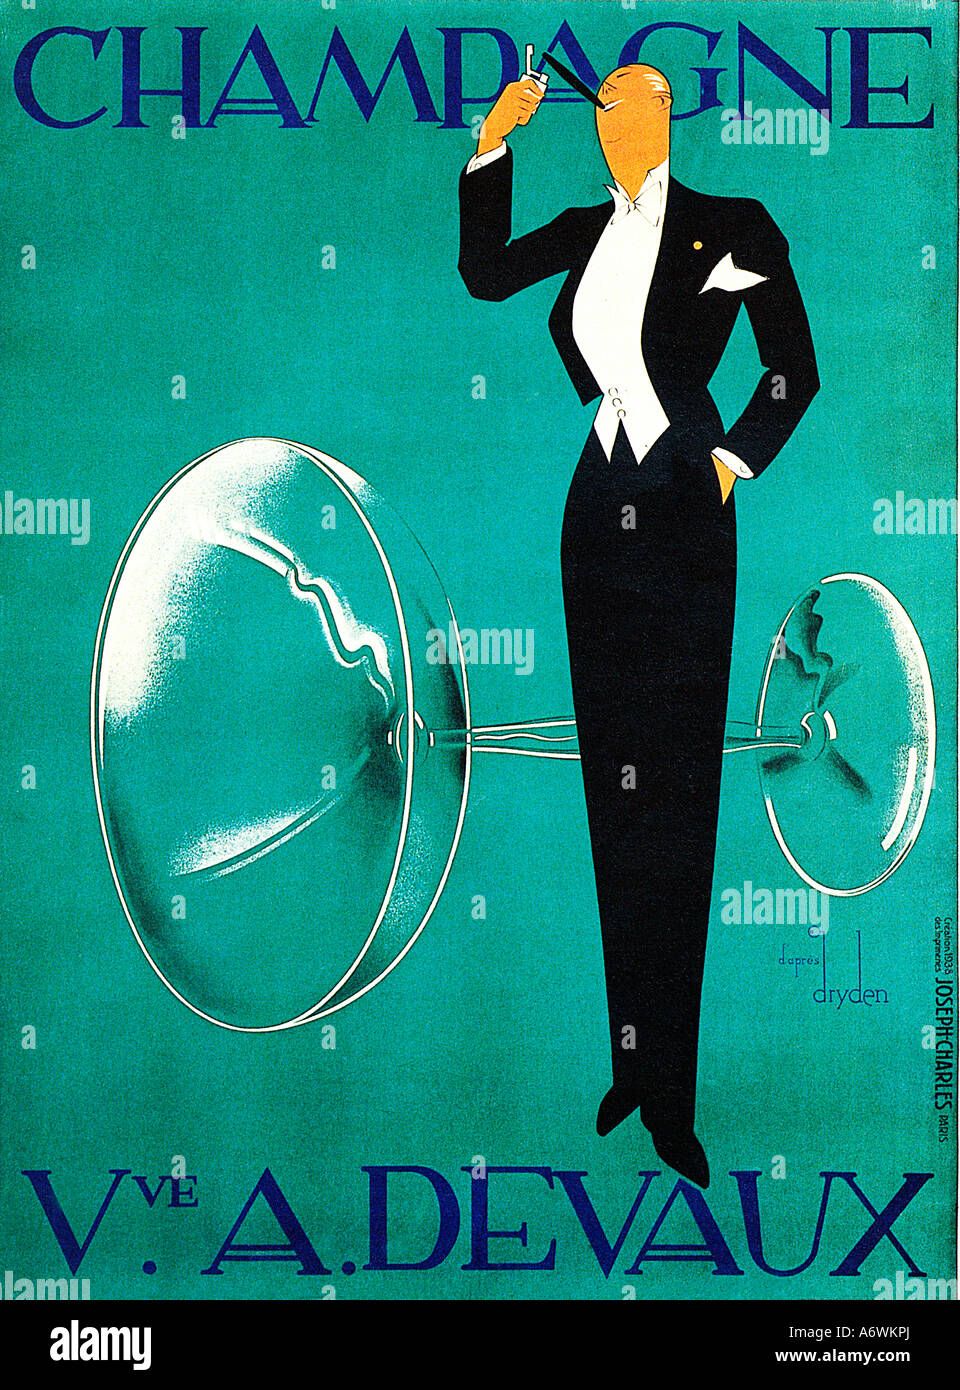 Champagne Devaux the famous 1930s Art Deco poster for the ...